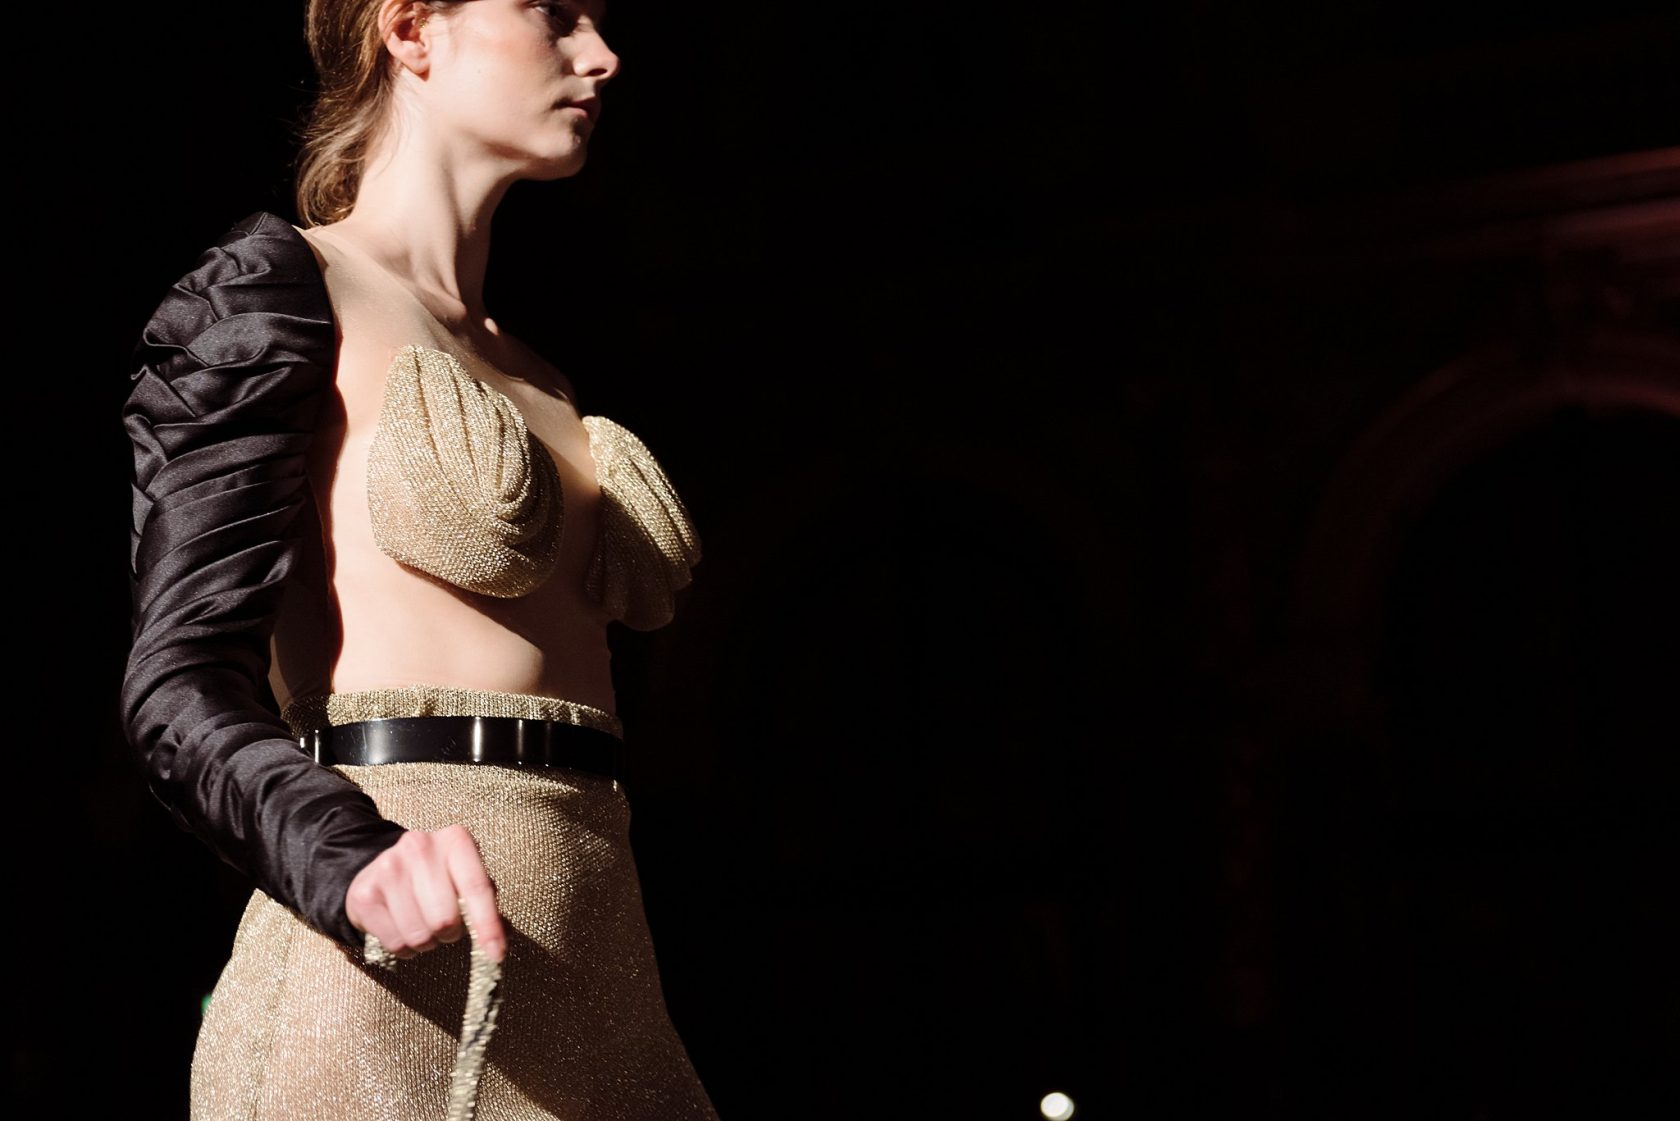 shooting fashion shows at fashion week how to guide for photographers